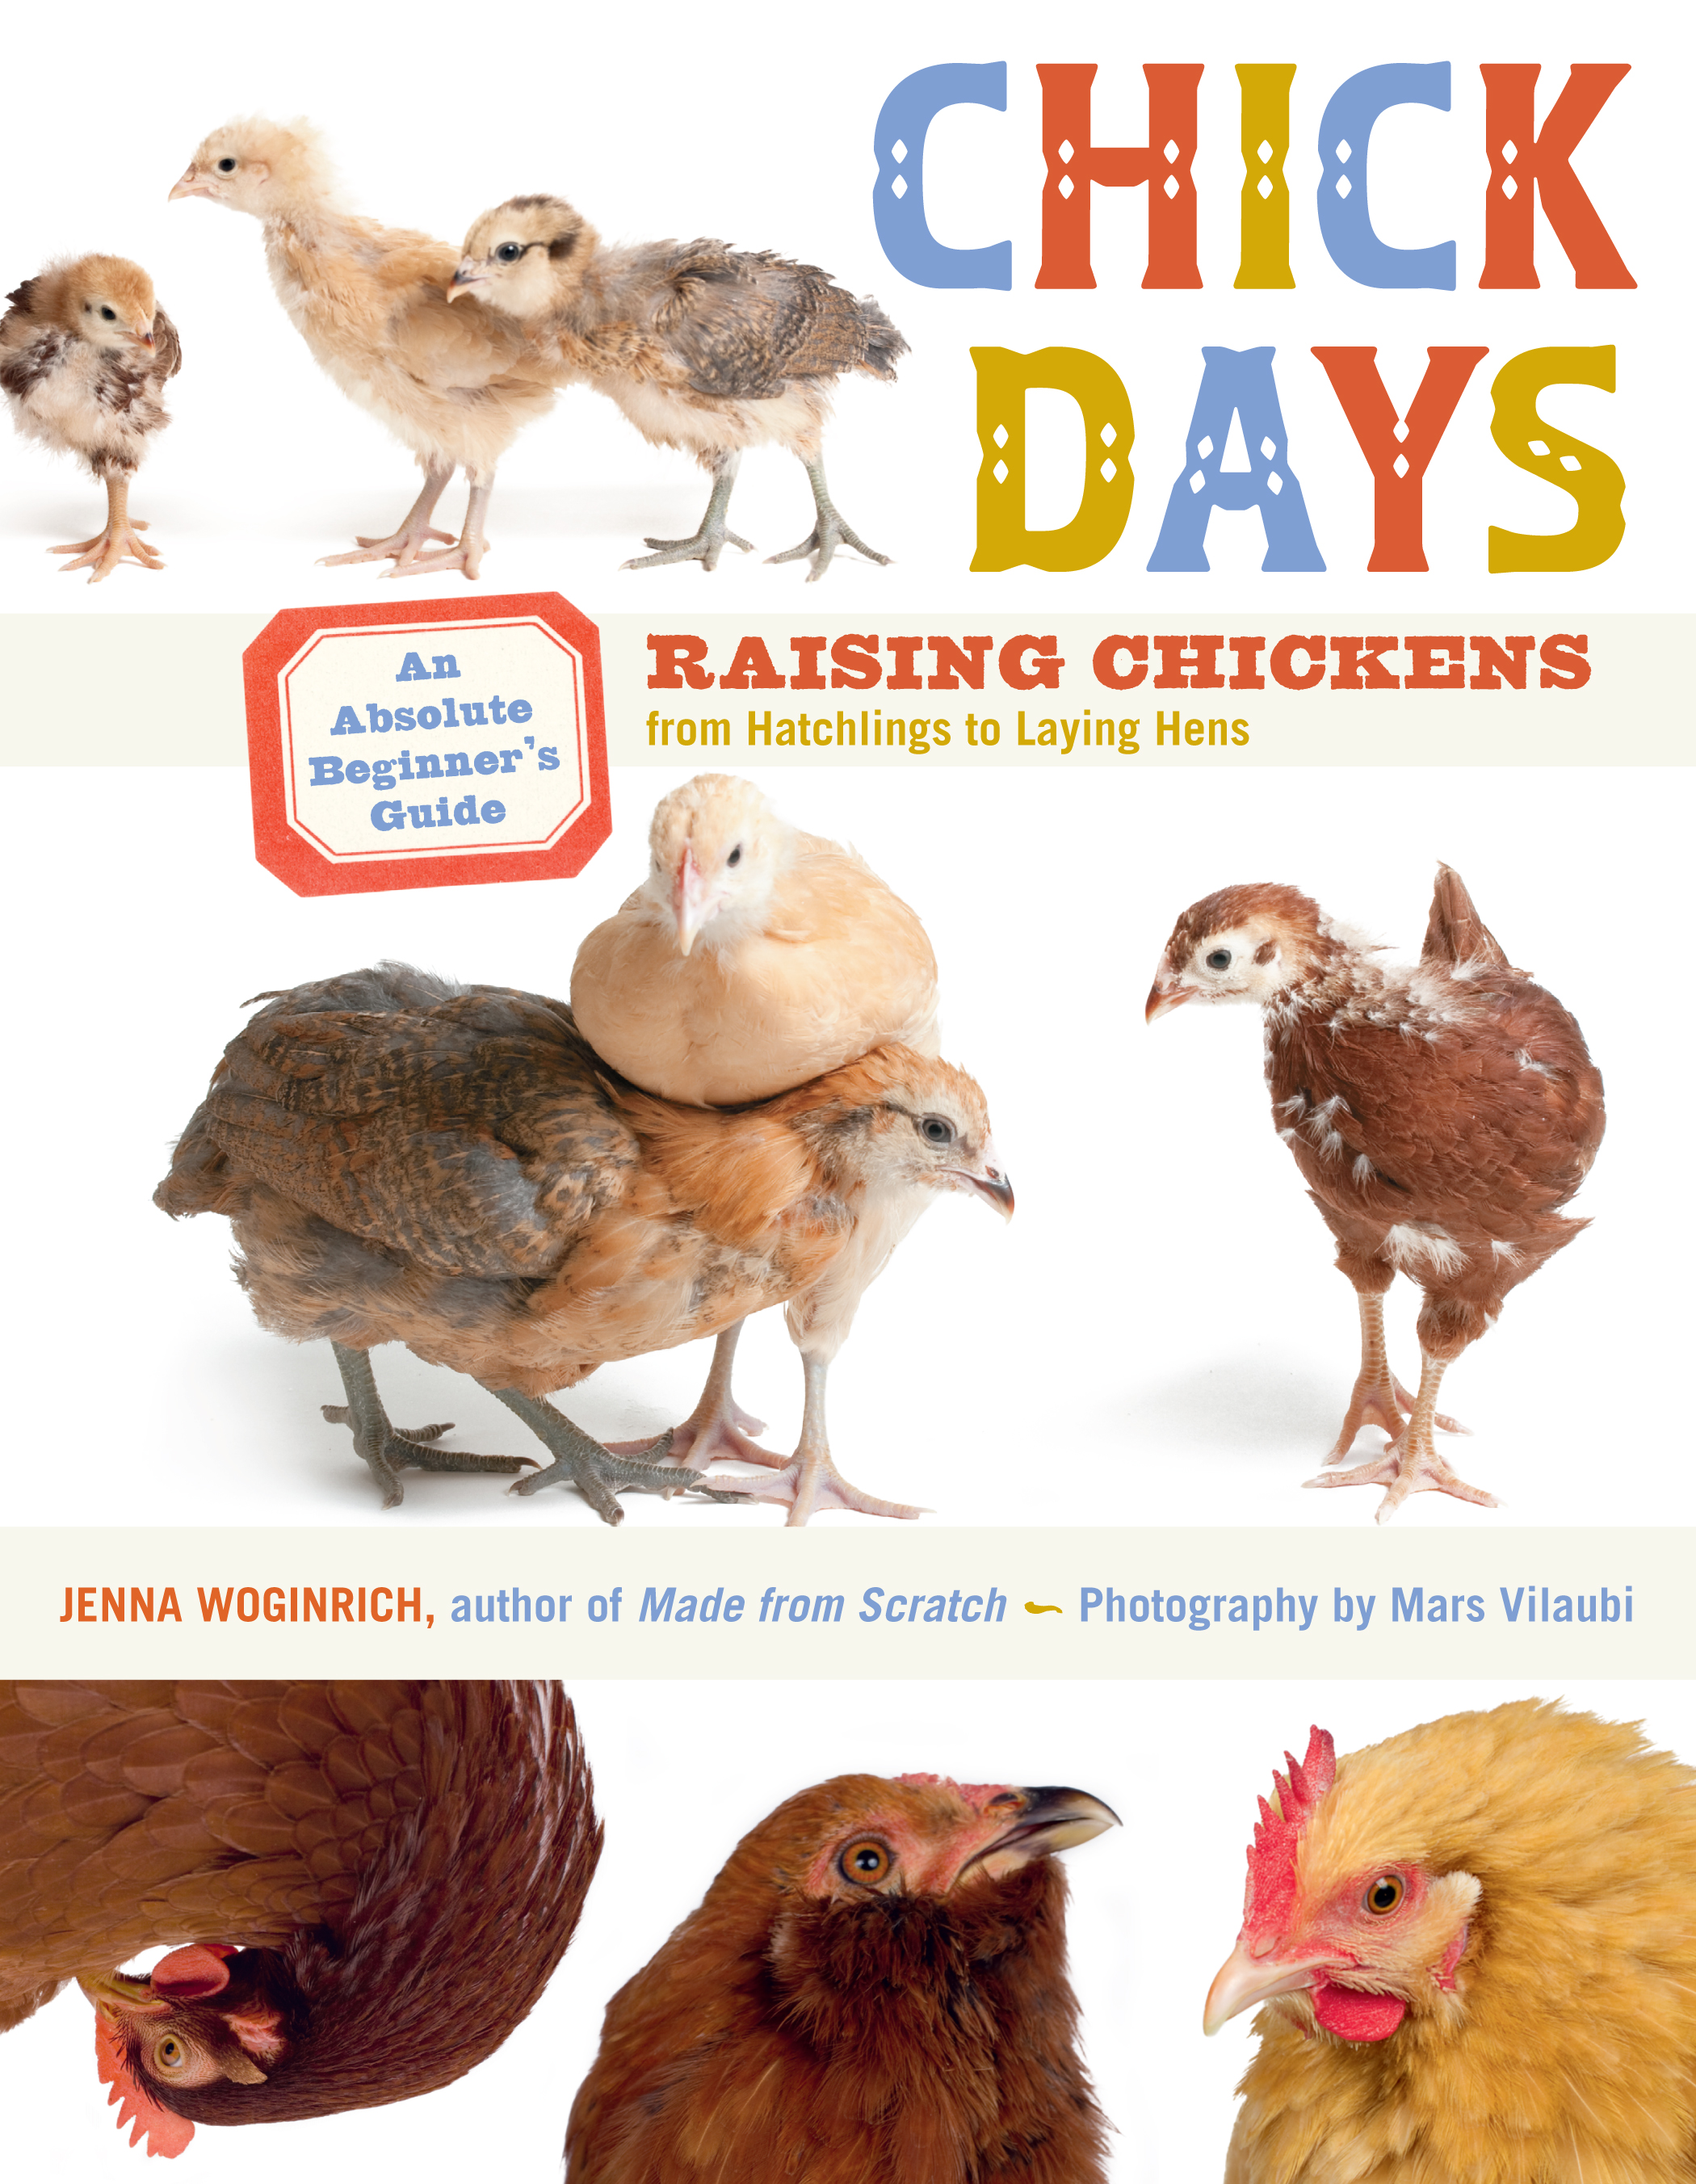 Chick Days An Absolute Beginner's Guide to Raising Chickens from Hatching to Laying - Jenna Woginrich